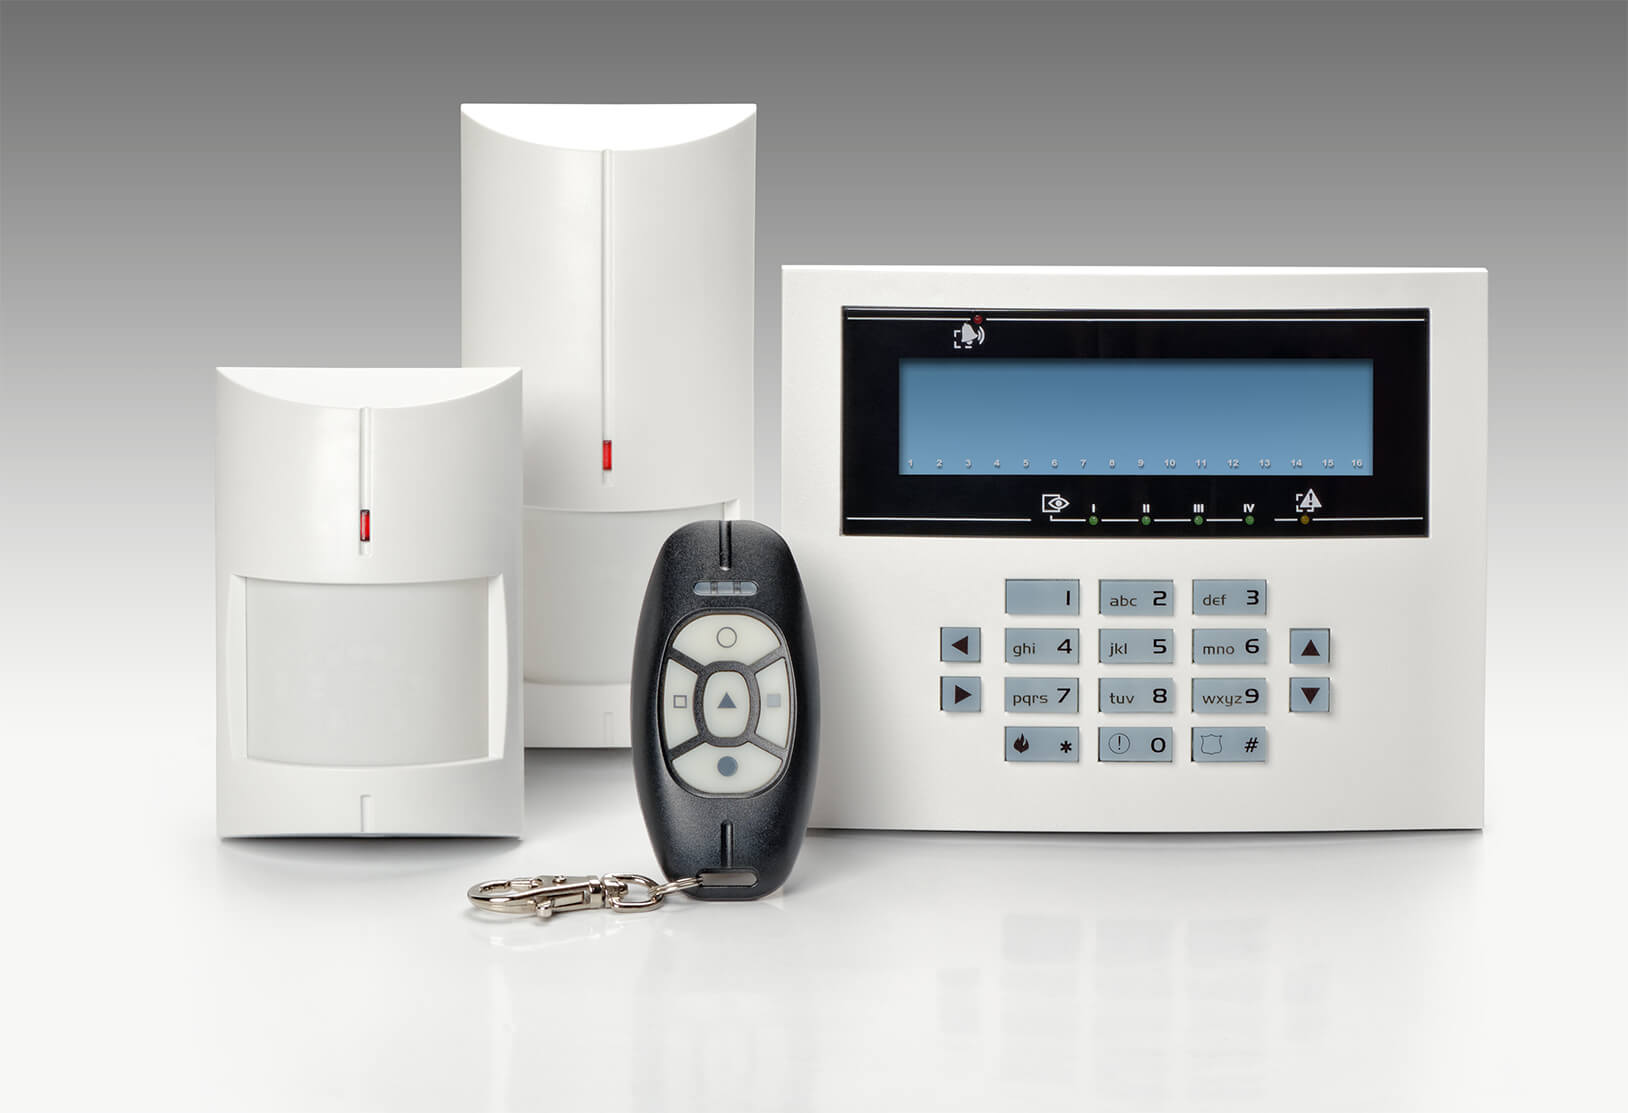 Commercial Burglar Alarms For Business in Eltham SE9  - Local Eltham SE9 burglar alarm company.Call 02078872244 - Dedicated to Safety & Security. Companies, shops and homes ..